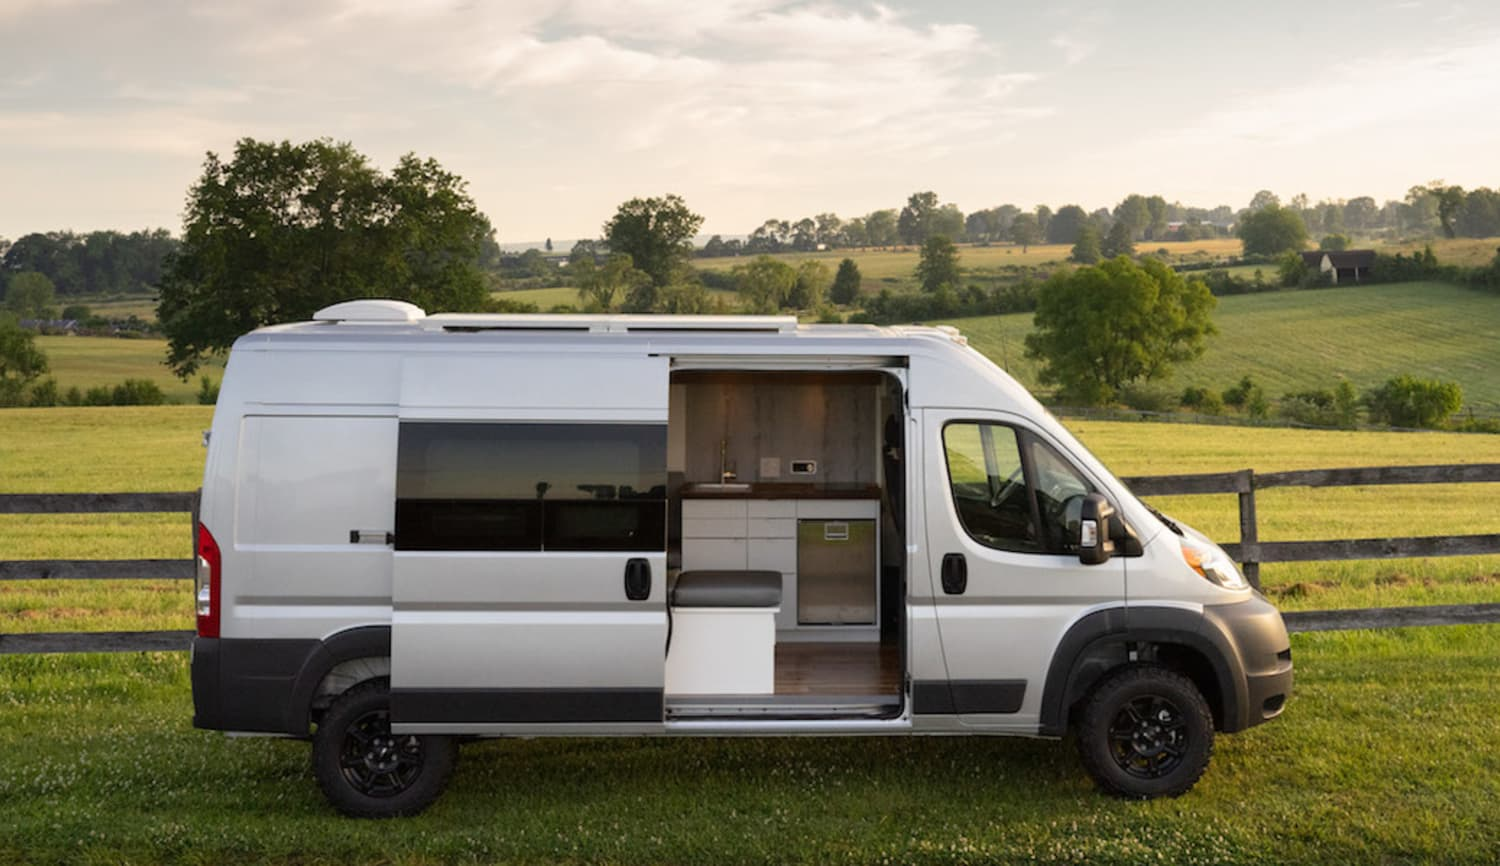 An Electric Camper Van Might Be the Living Space of an Adventurer's Dreams